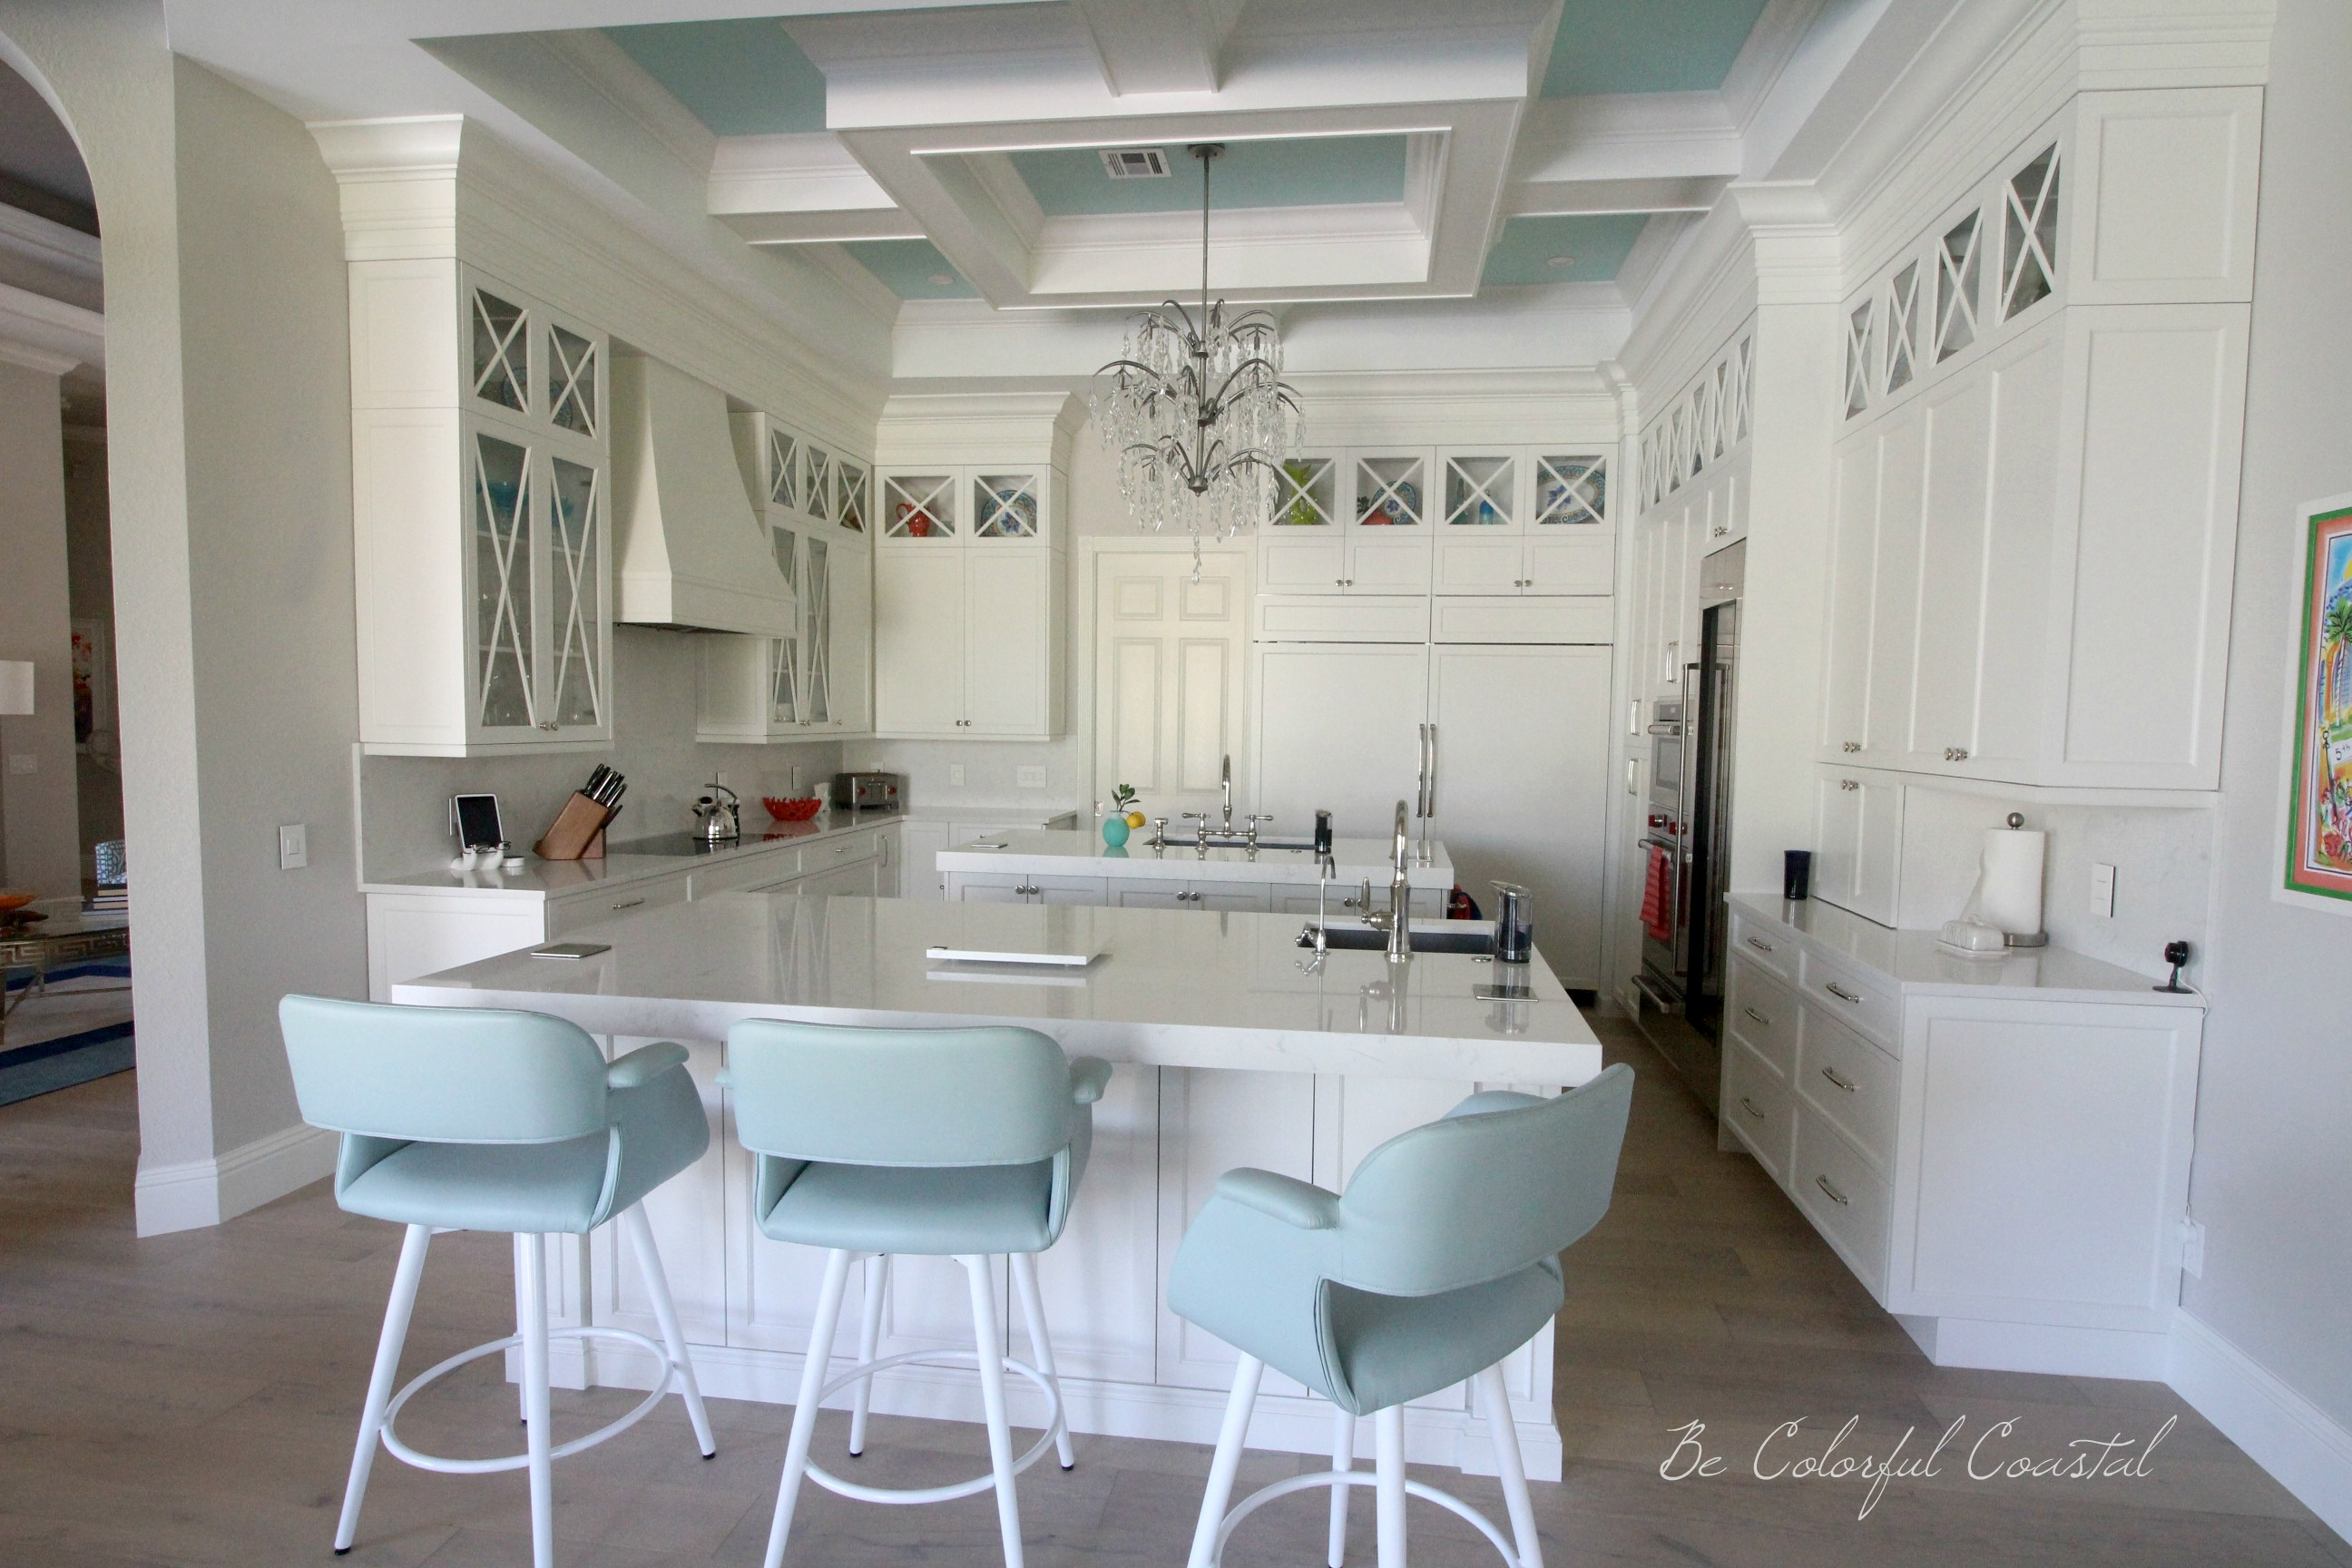 reputable site 54273 4efc3 Be Colorful Coastal: New Counter/Barstools For A Coastal Kitchen